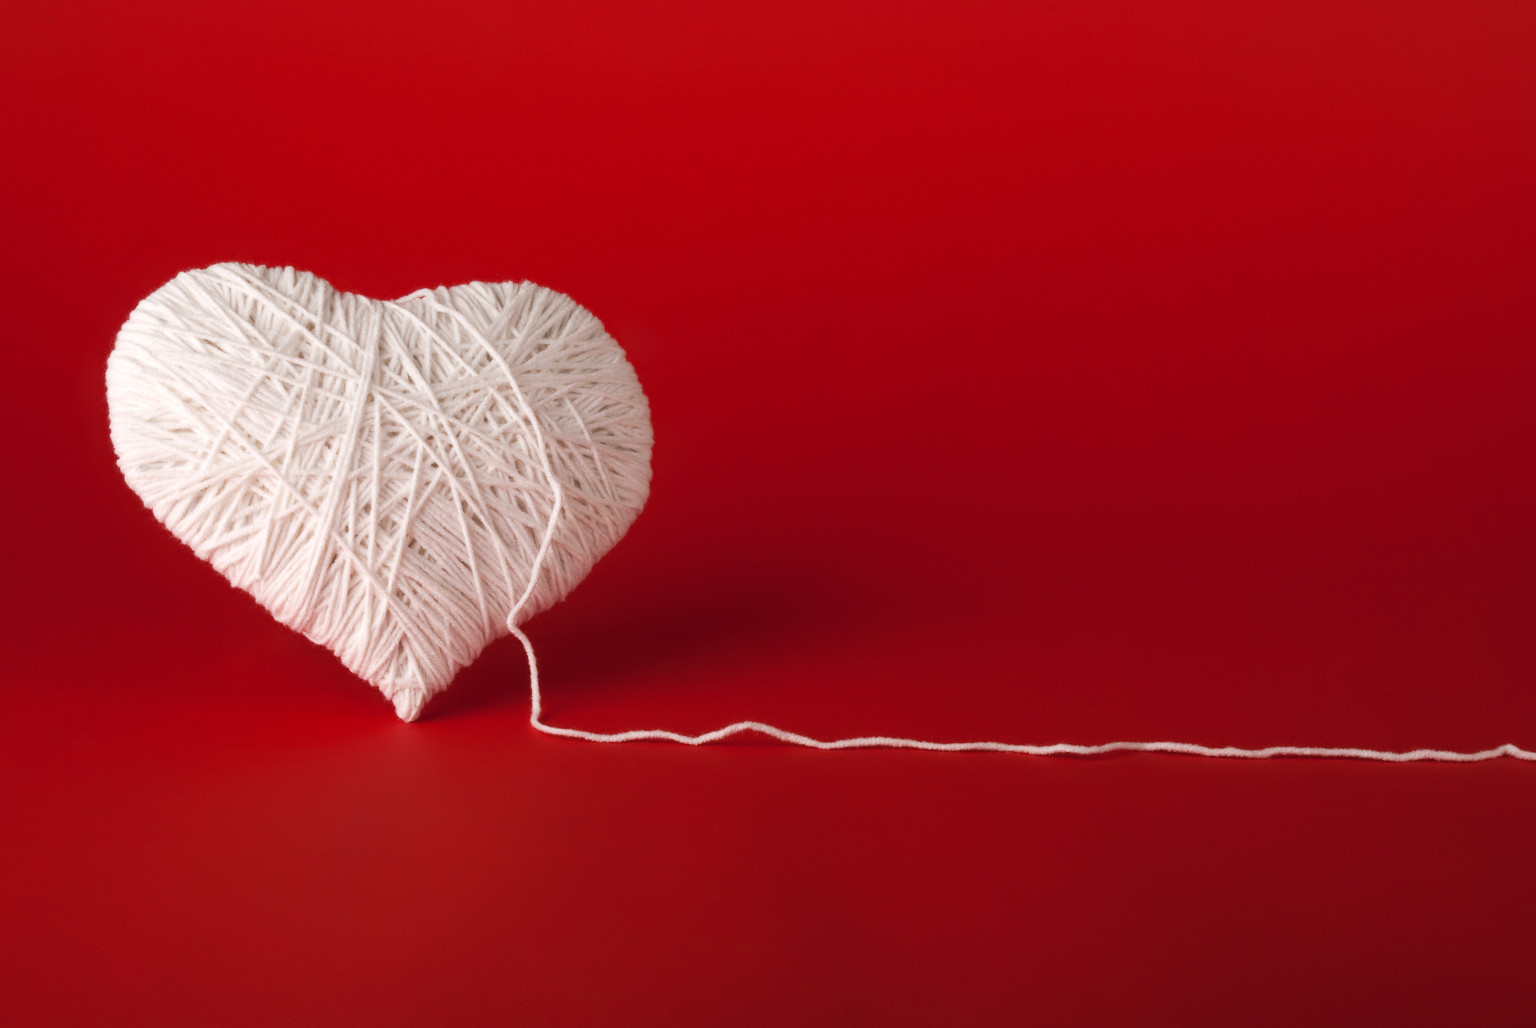 dating love relationships Anyone can improve their sexual and romantic relationships my course is based on decades of research and real world experience it's also cheaper than a restraining order the little-known secret to meet, attract, and maintain healthy and happy romantic/sexual relationships boils down to this simple principle (and you're probably screwing.